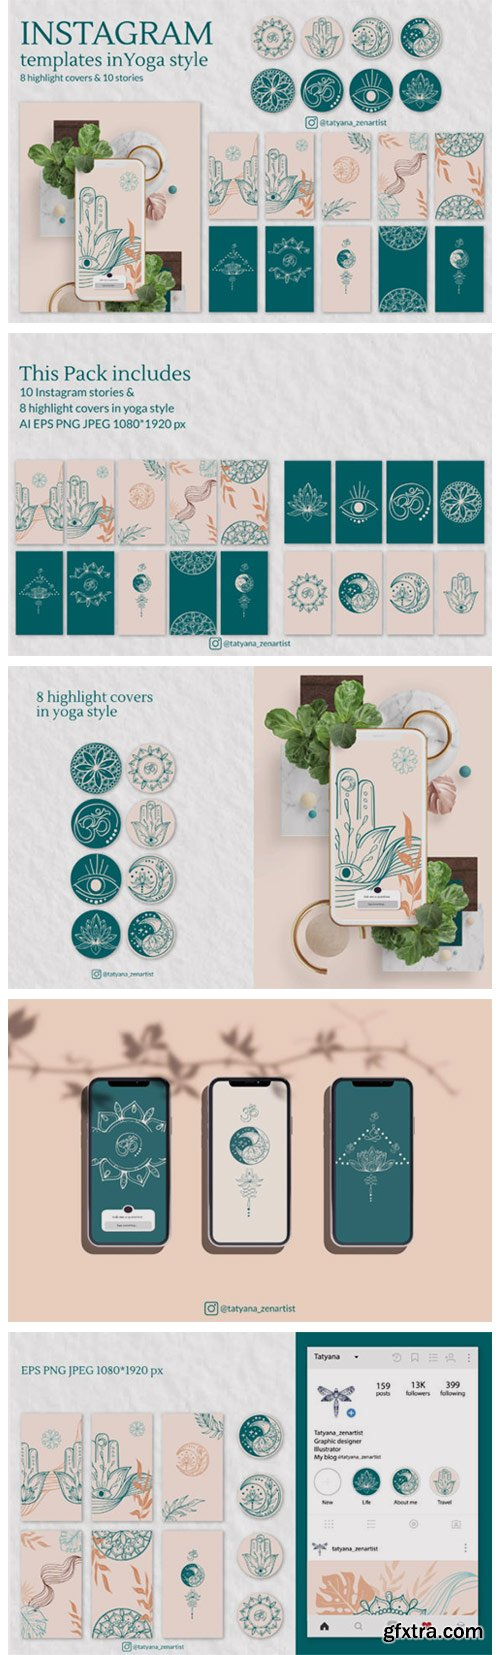 Instagram Template in Yoga Style Vers. 2 4701052